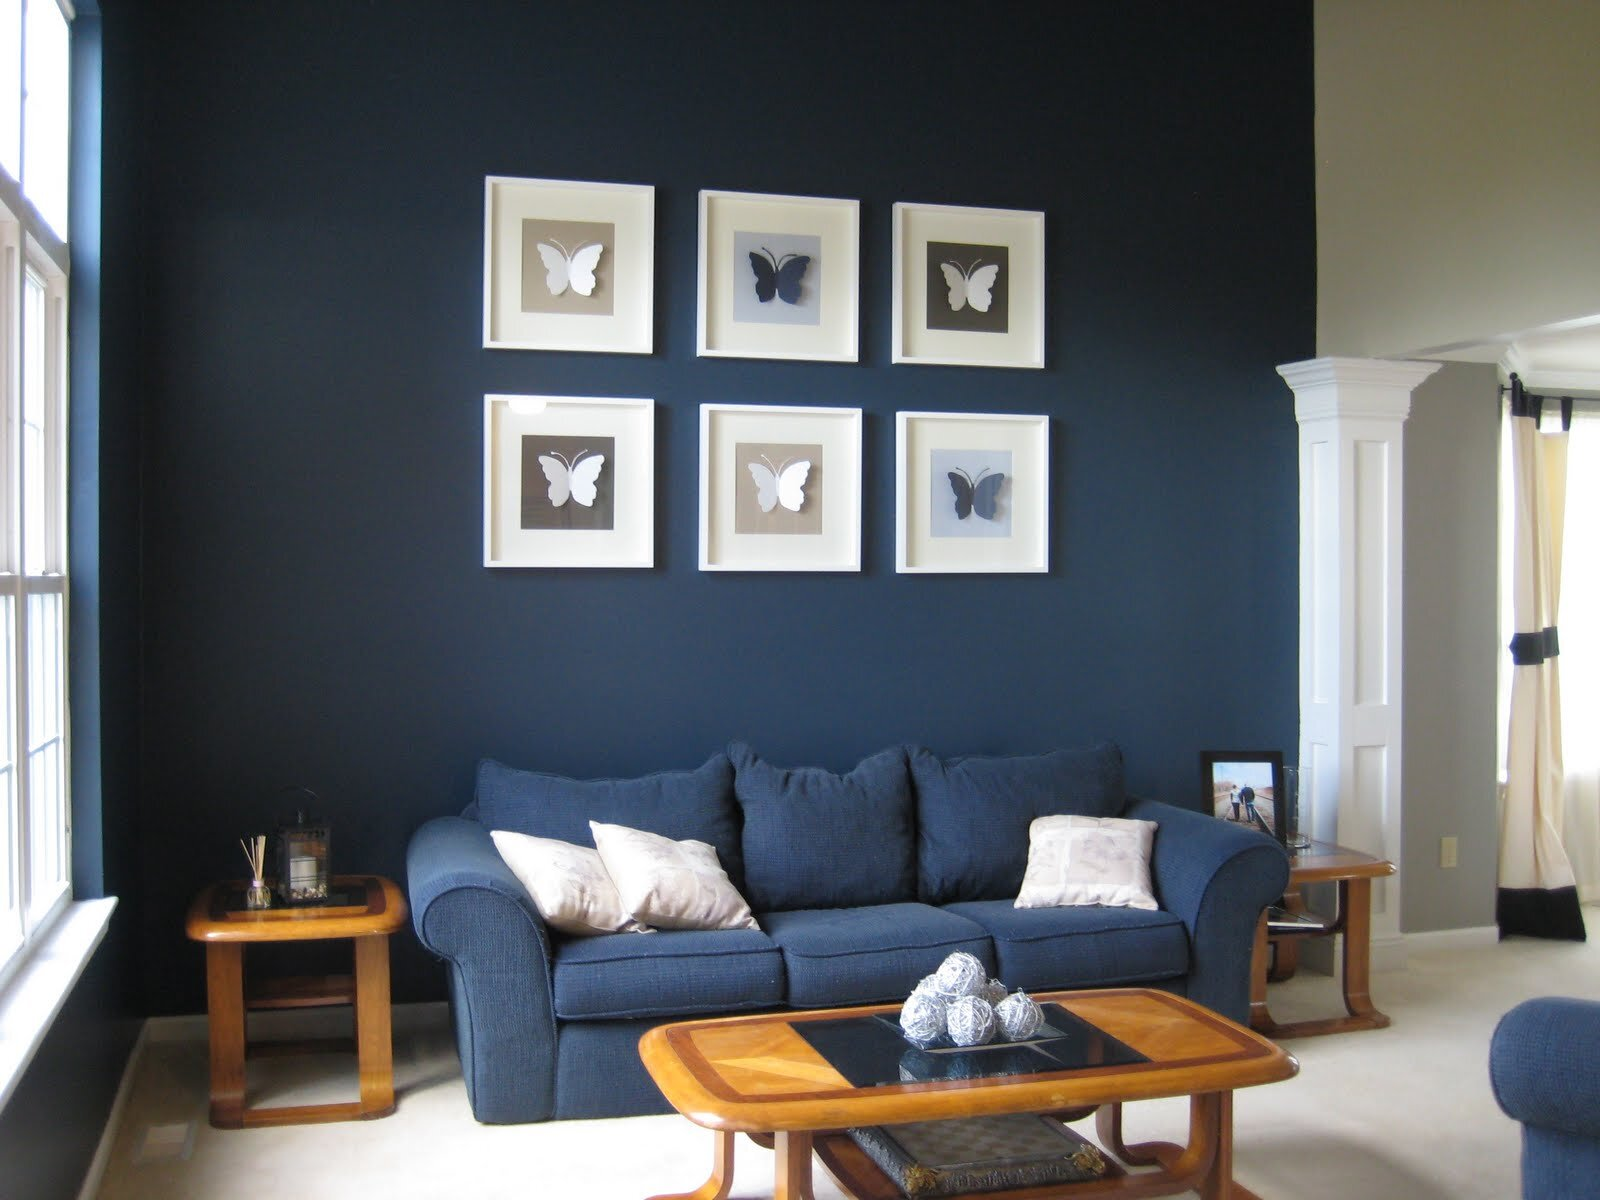 Painting room with hues of blue for Wall painting living room ideas